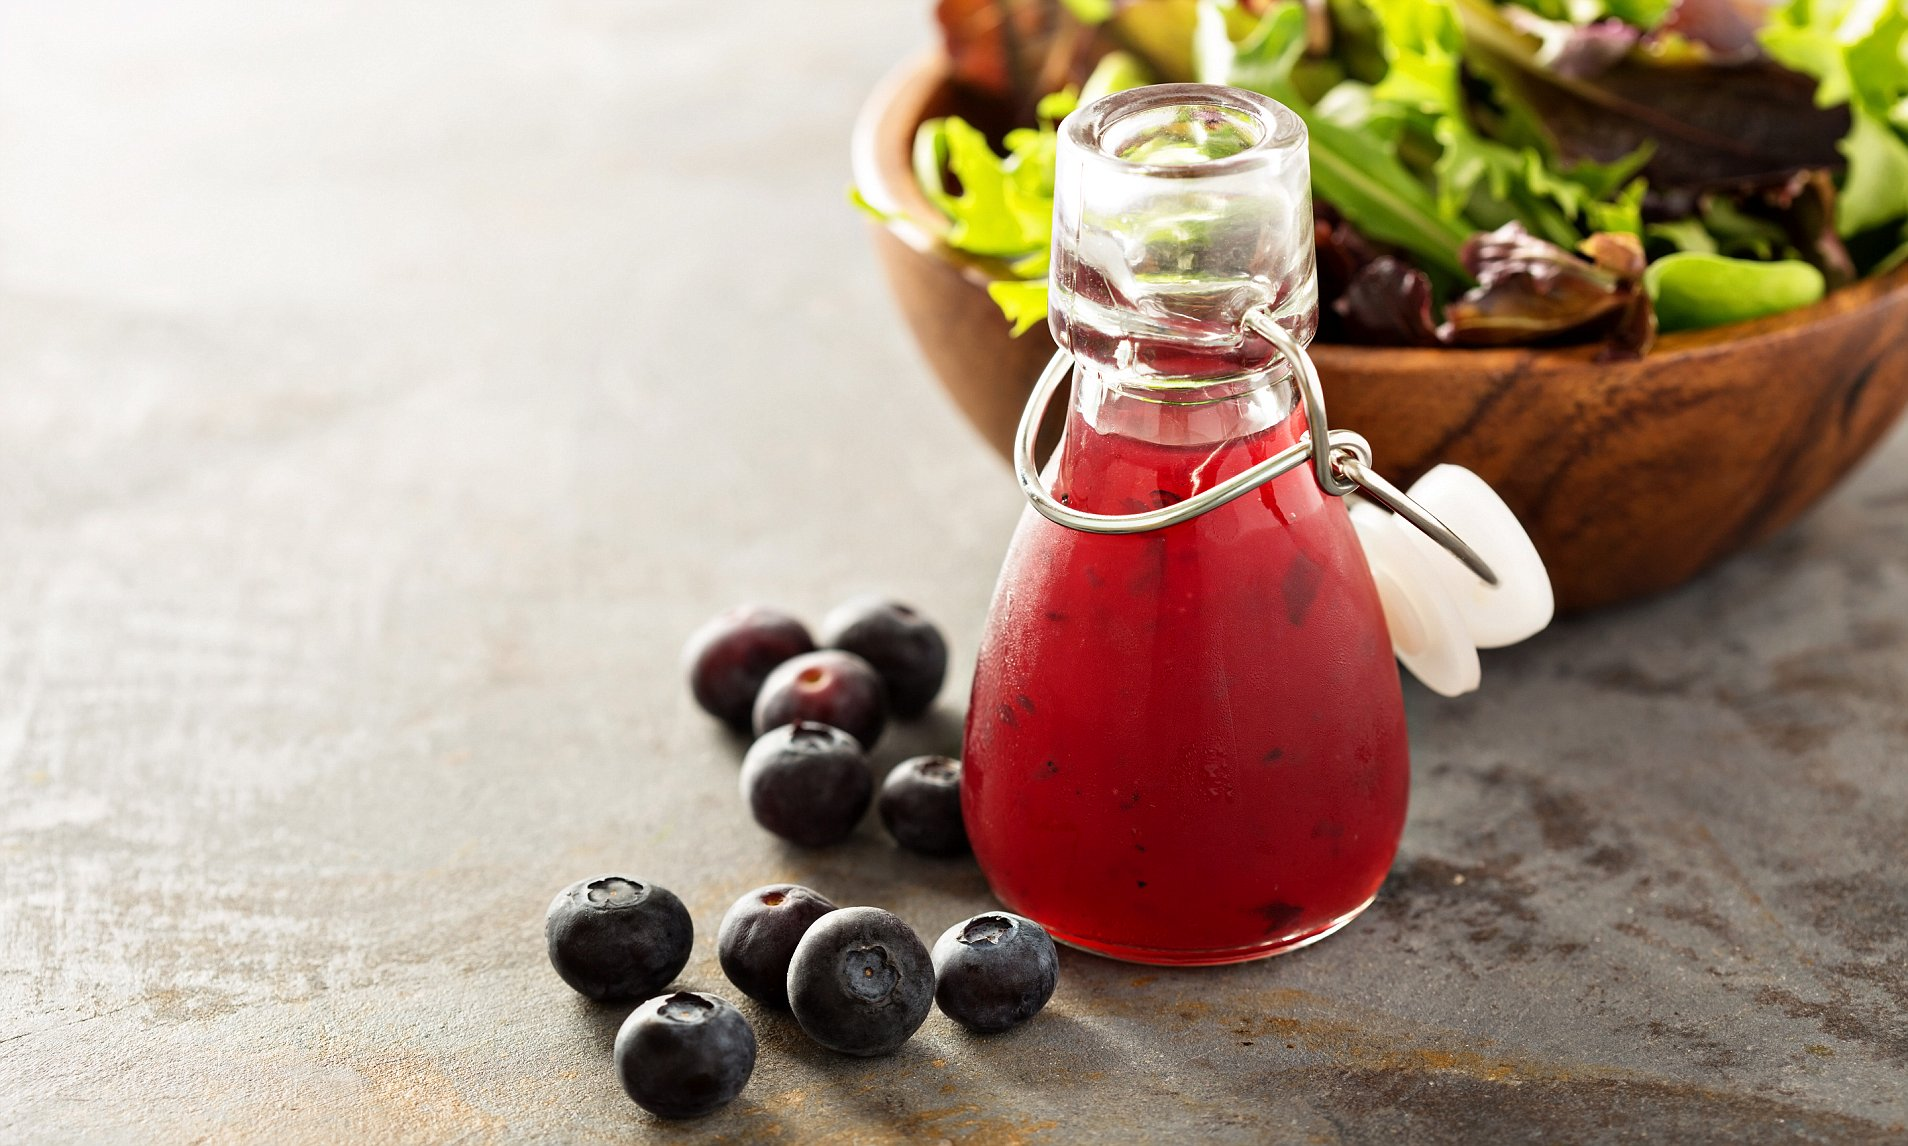 Blueberry Vinegar